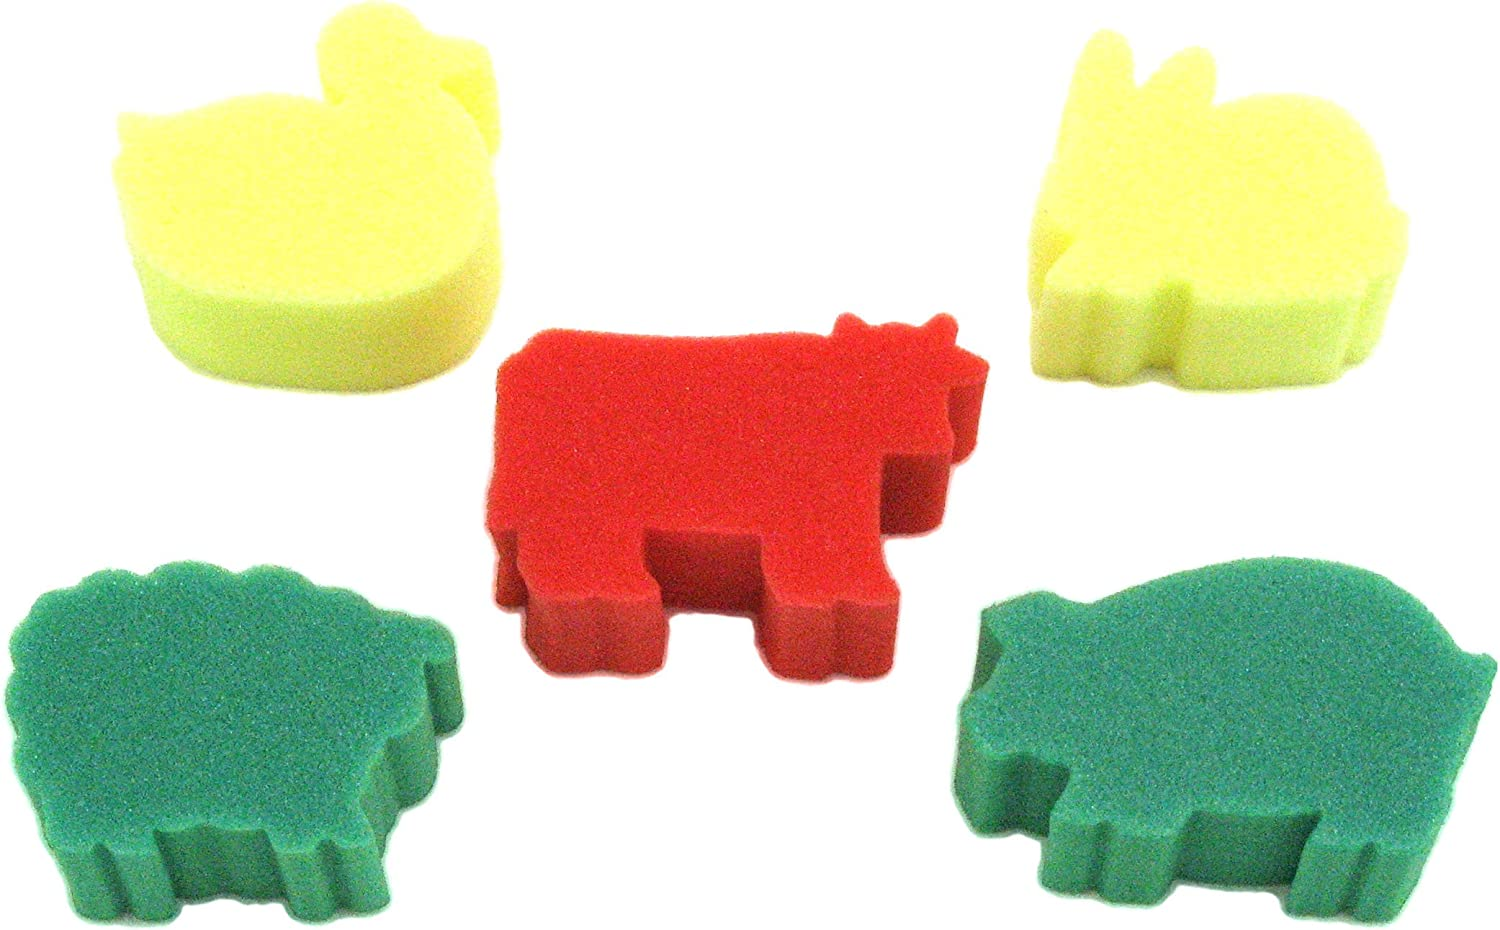 Pack of 5 Be Creative Animal Sponge Painting Set